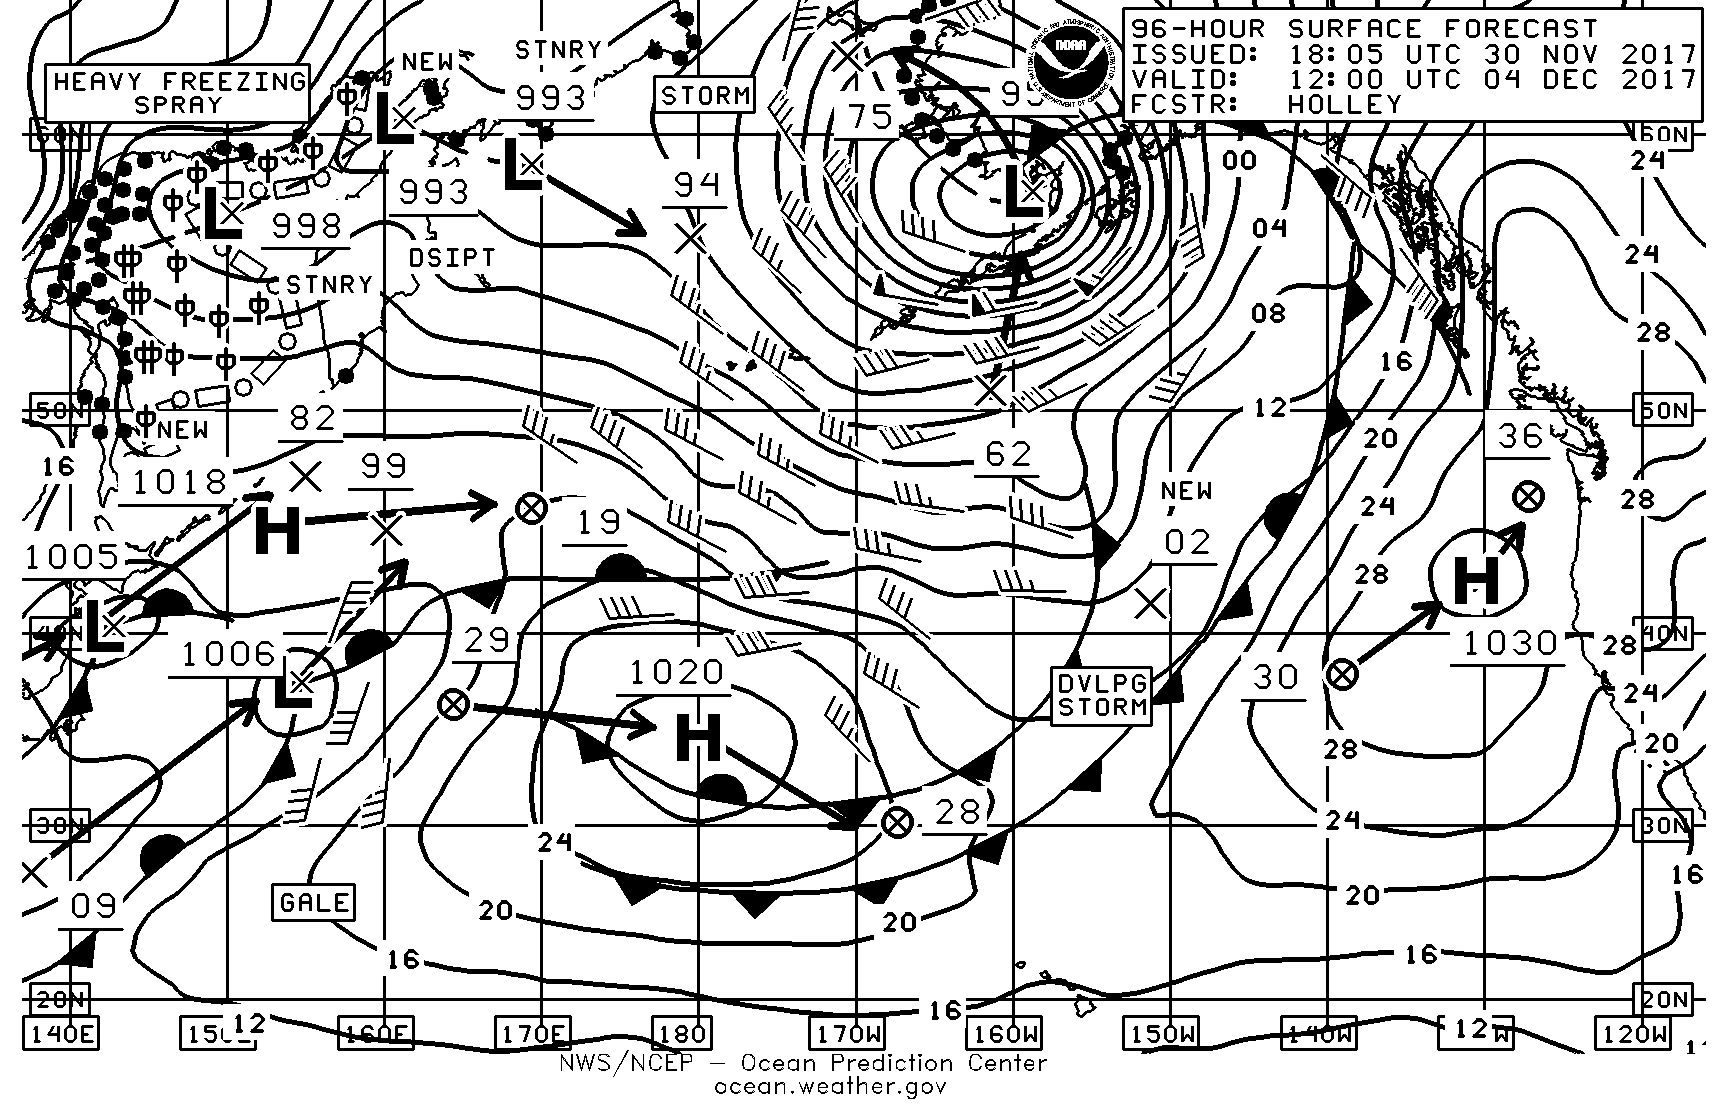 Bruces briefs 12 and 3 dec tyc winter vashon sailish 4 dec surface chart nvjuhfo Choice Image